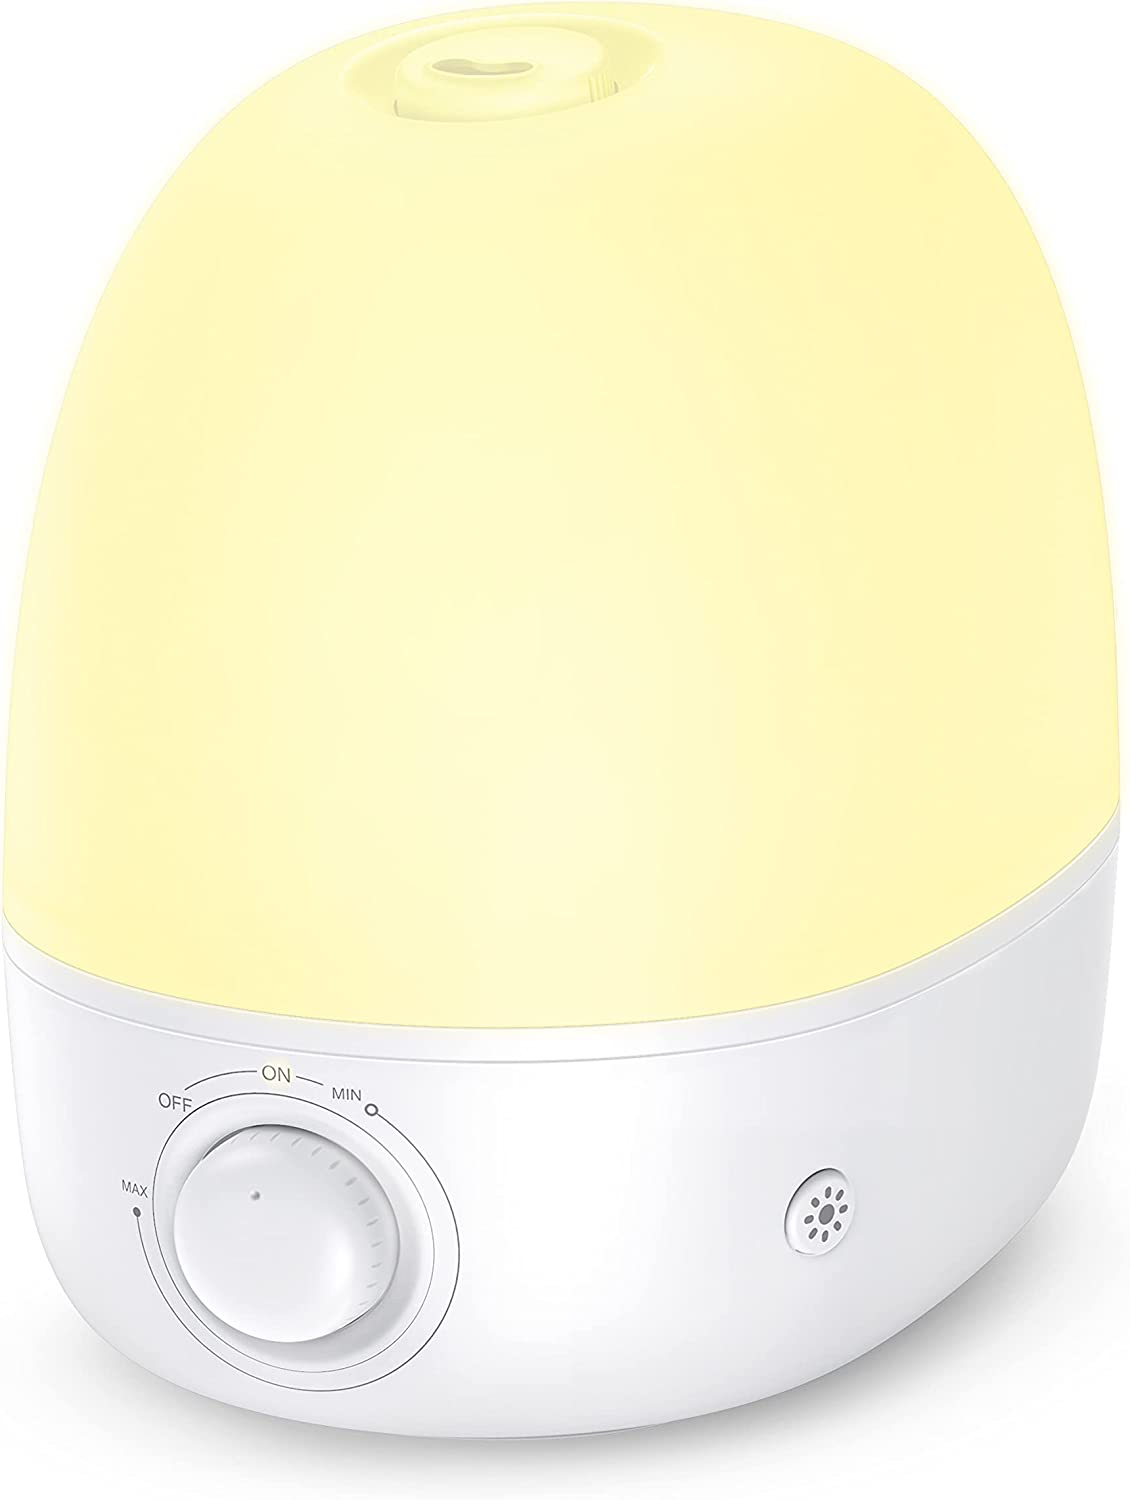 Humidifiers Special Campaign for Bedroom Choice 2.5L Quiet Mist Cool Hum Air Ultrasonic